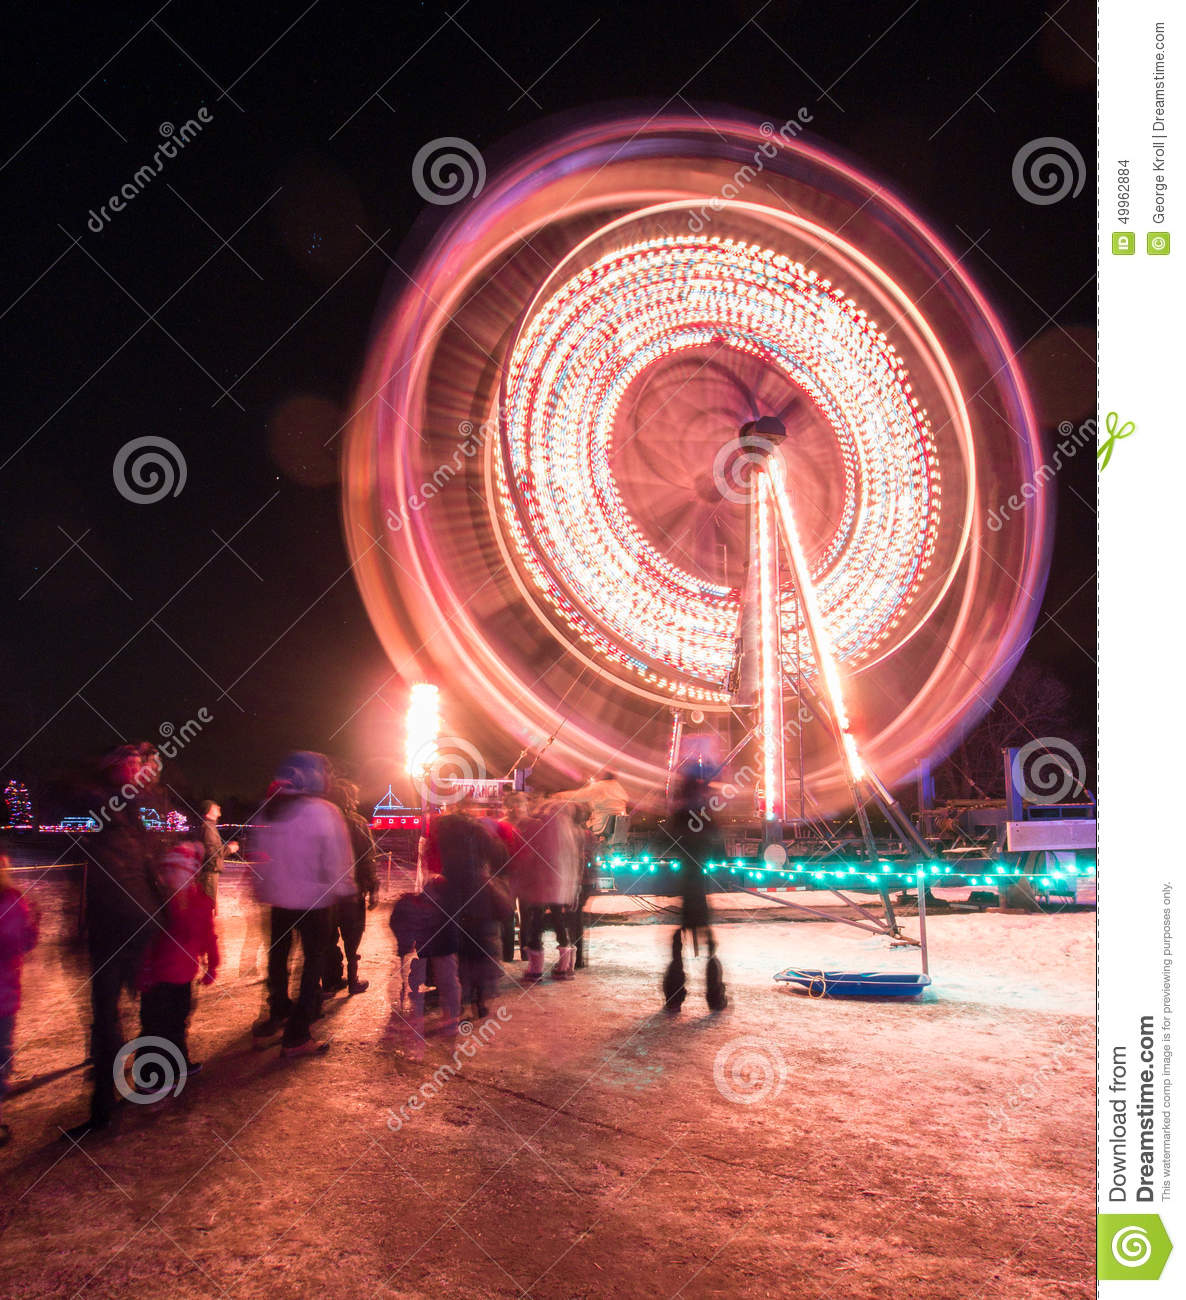 Night lights upper canada village - Spinning Ferris Wheel At Night Upper Canada Village Editorial Stock Image